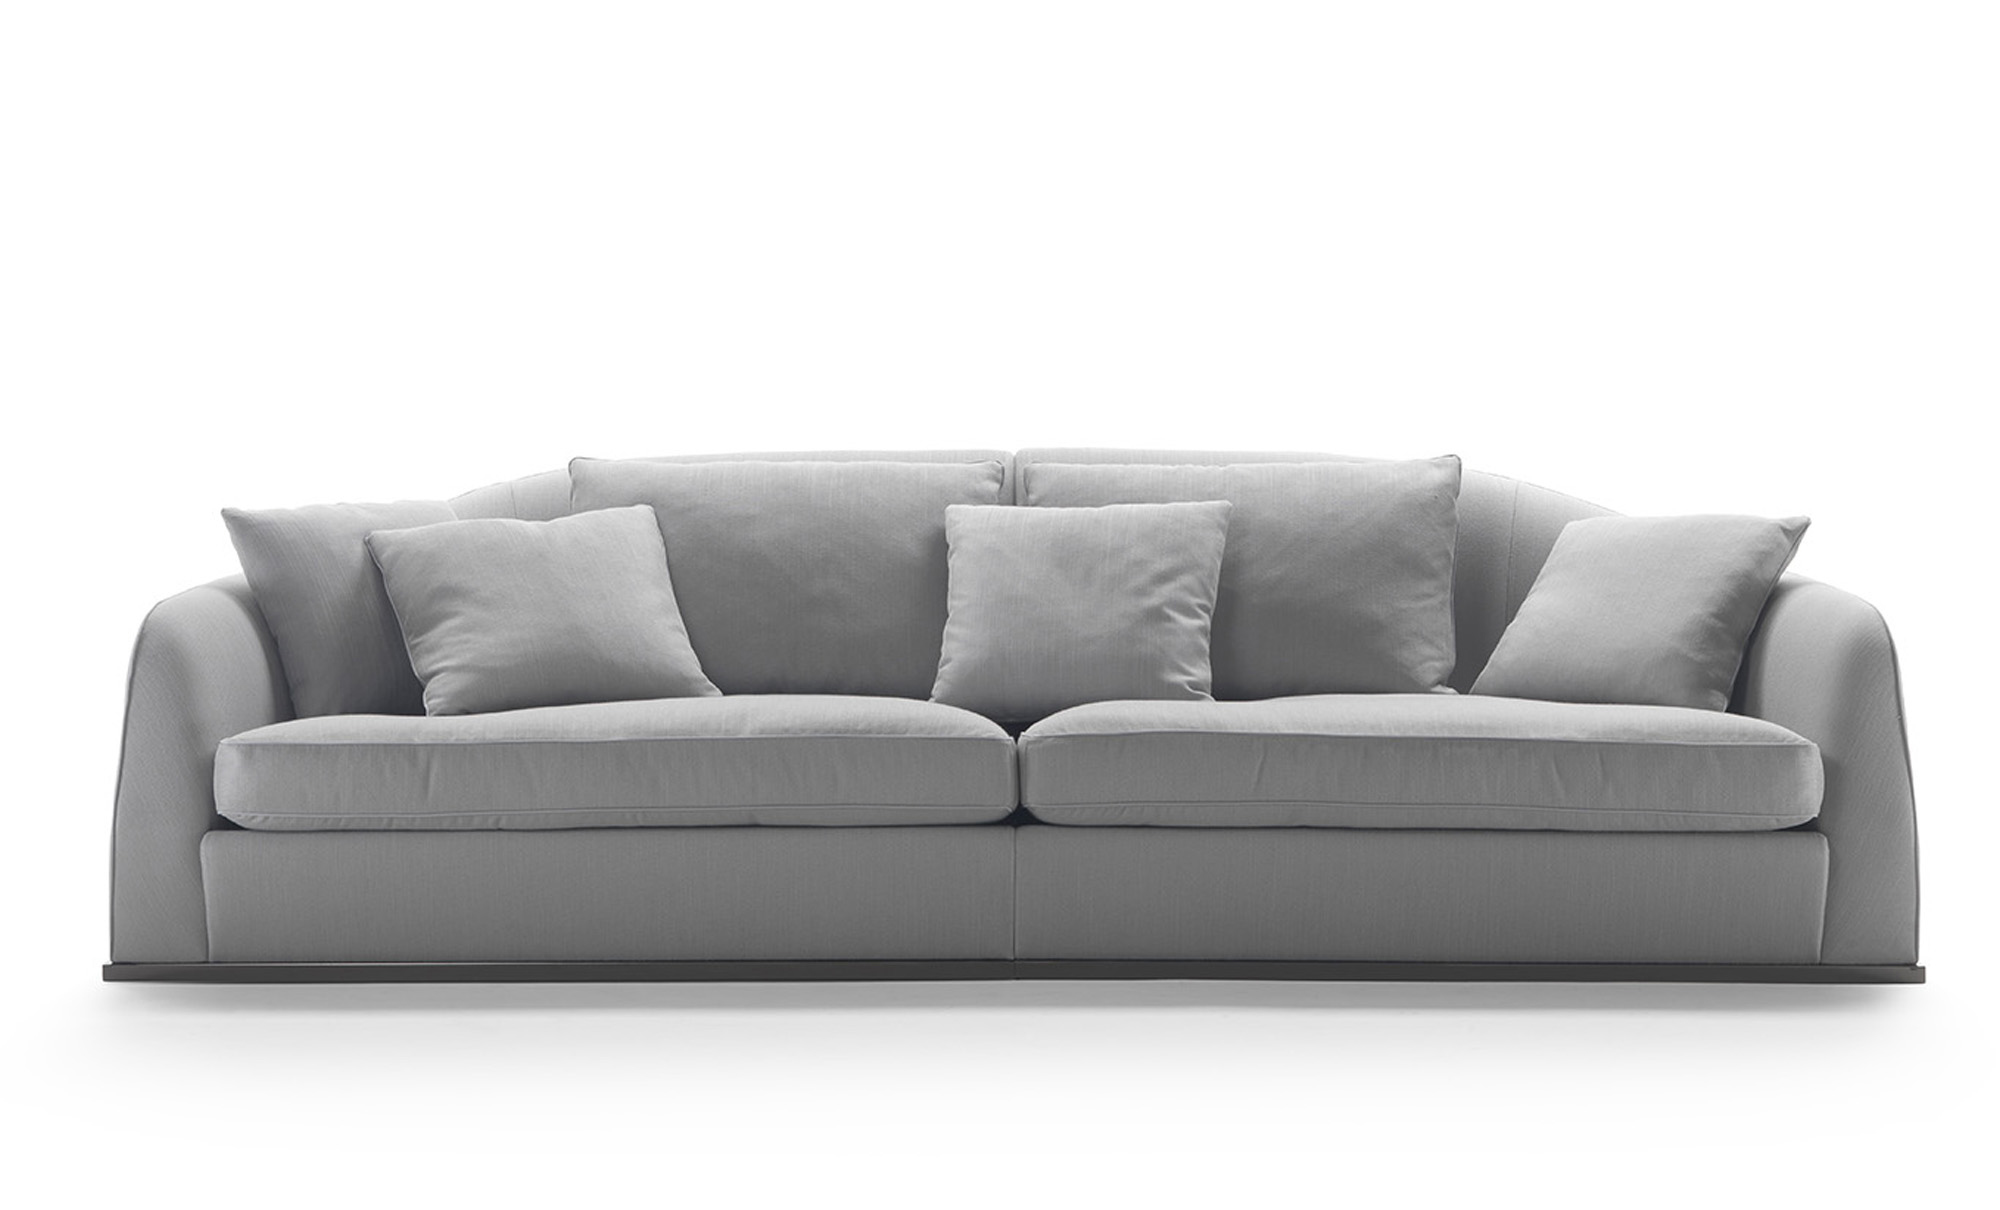 Alfred sofa fanuli furniture for Fabric couches for sale